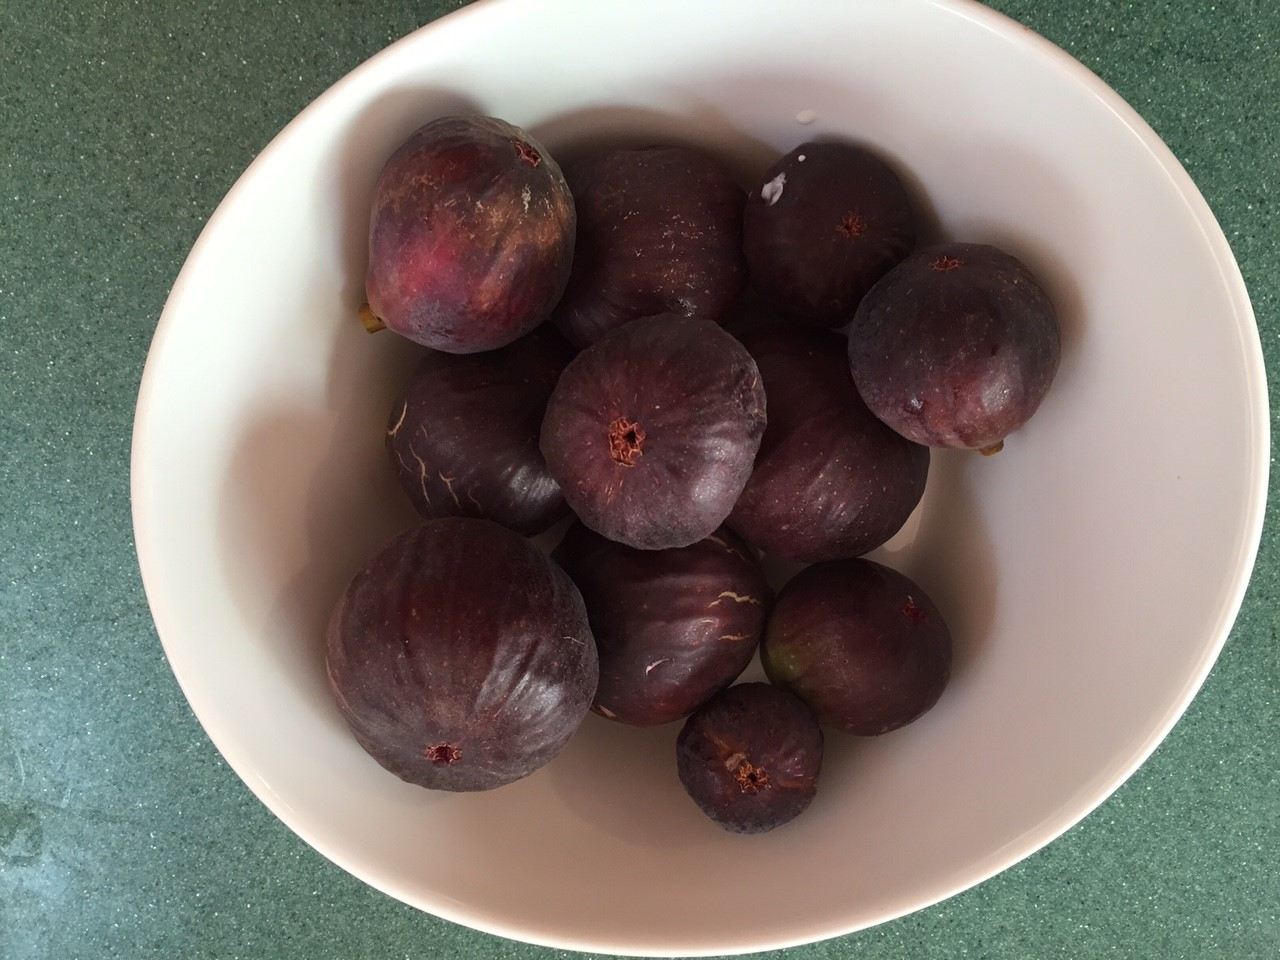 Some of our figs.